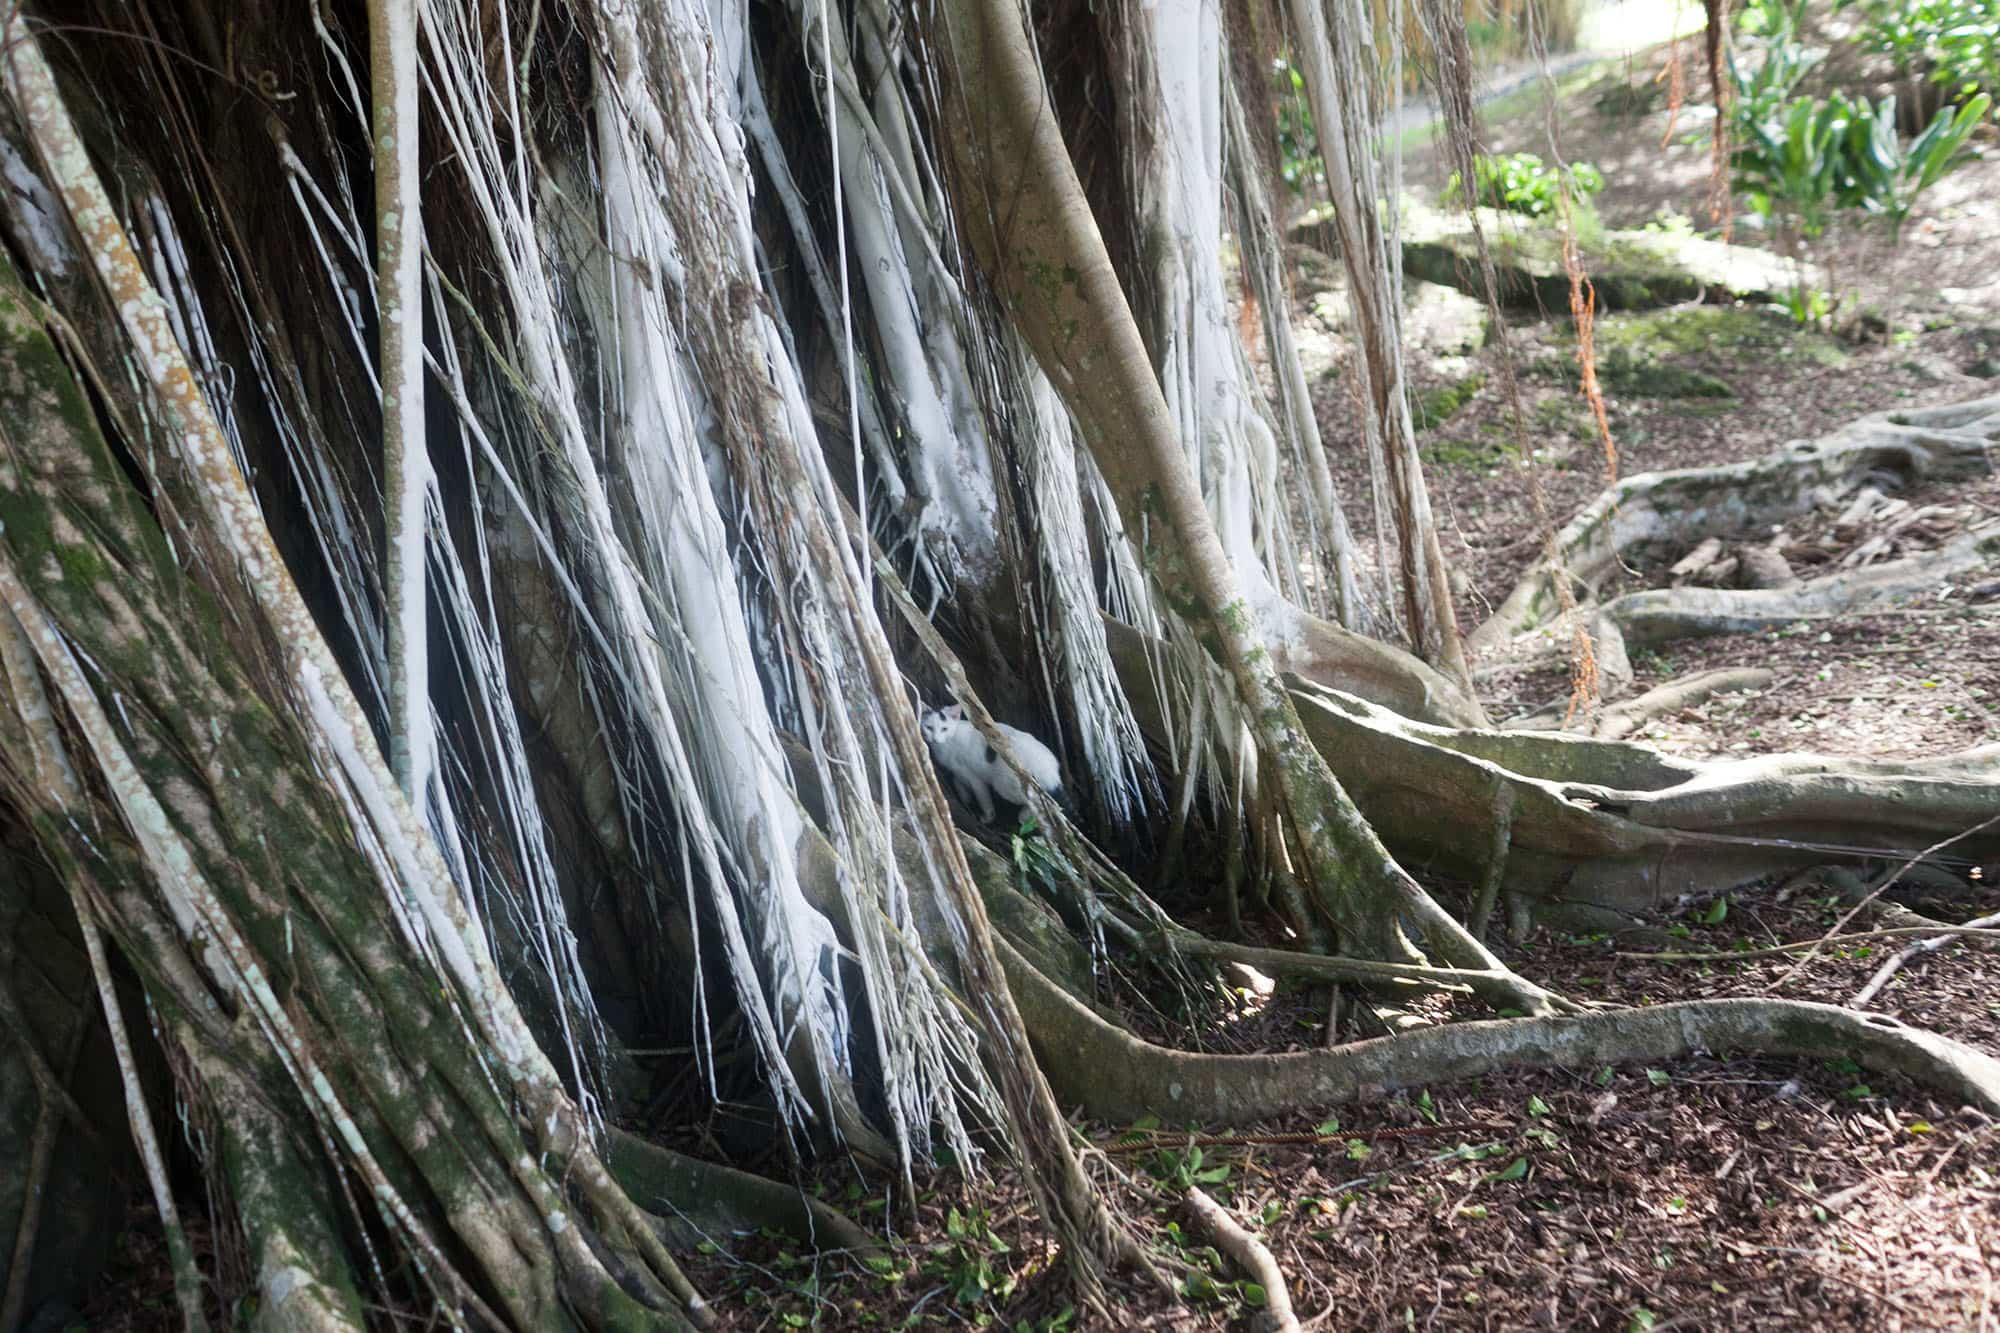 Liliʻuokalani Park and Gardens. Banyan trees in Hilo, Big Island, Hawaii. Things to do in Hilo, Hawaii.